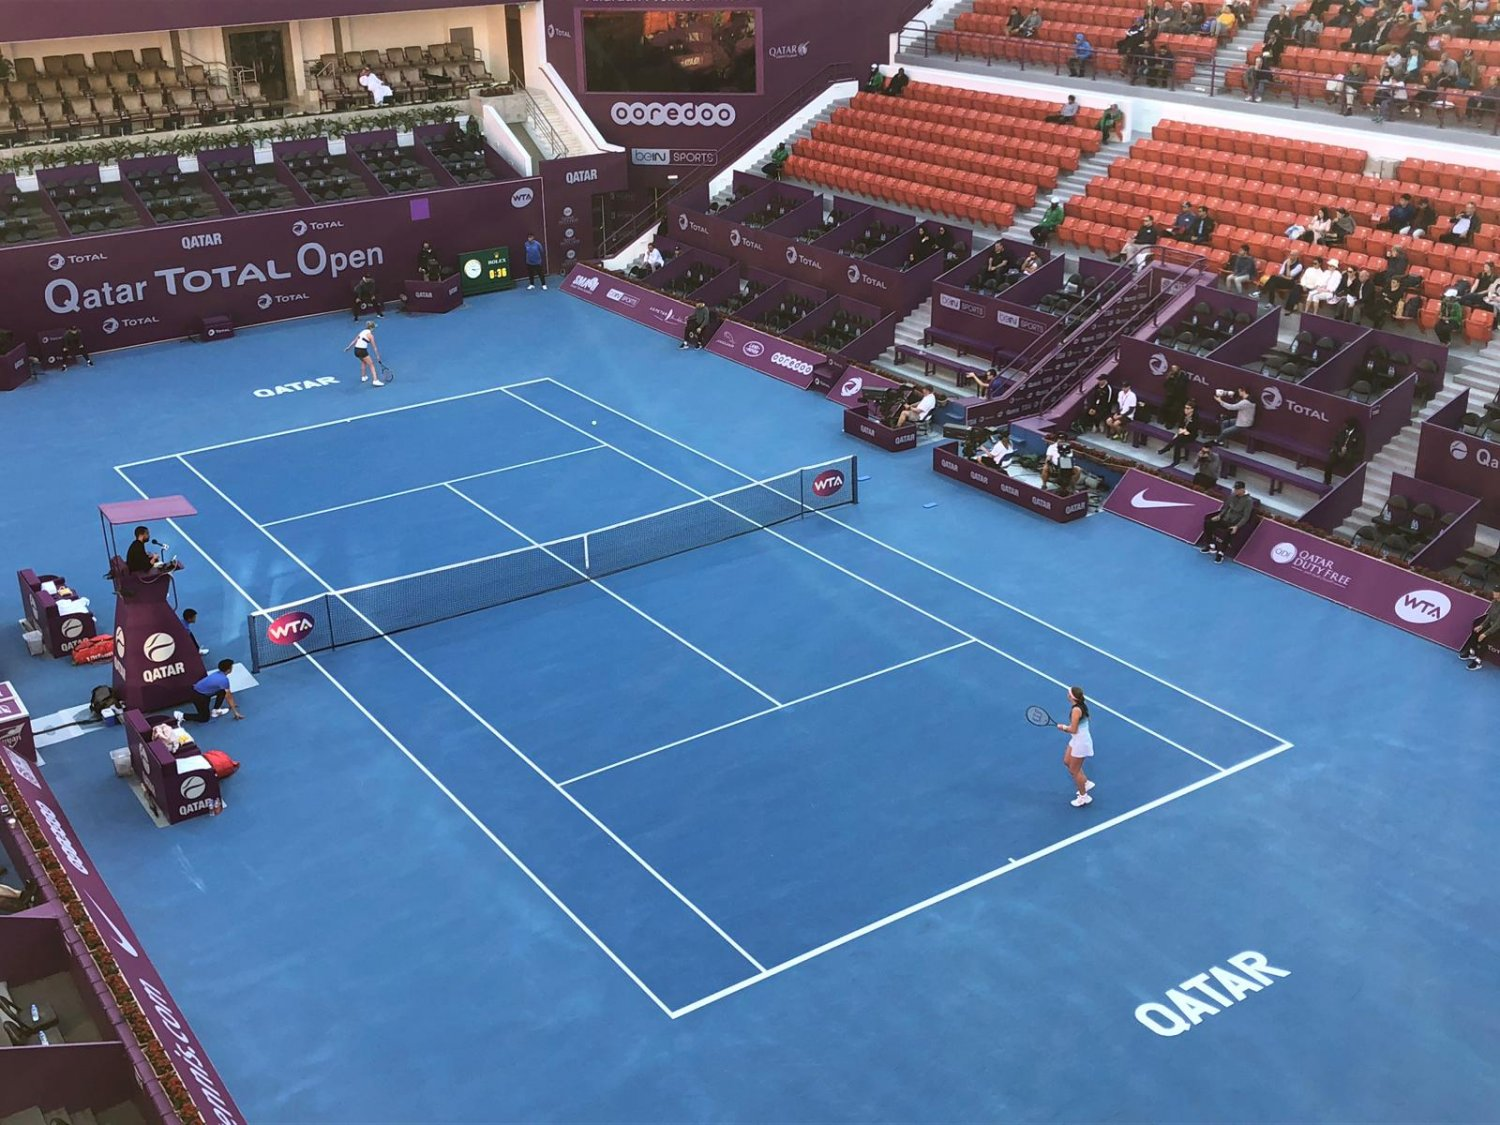 Qatar TOTAL OPEN